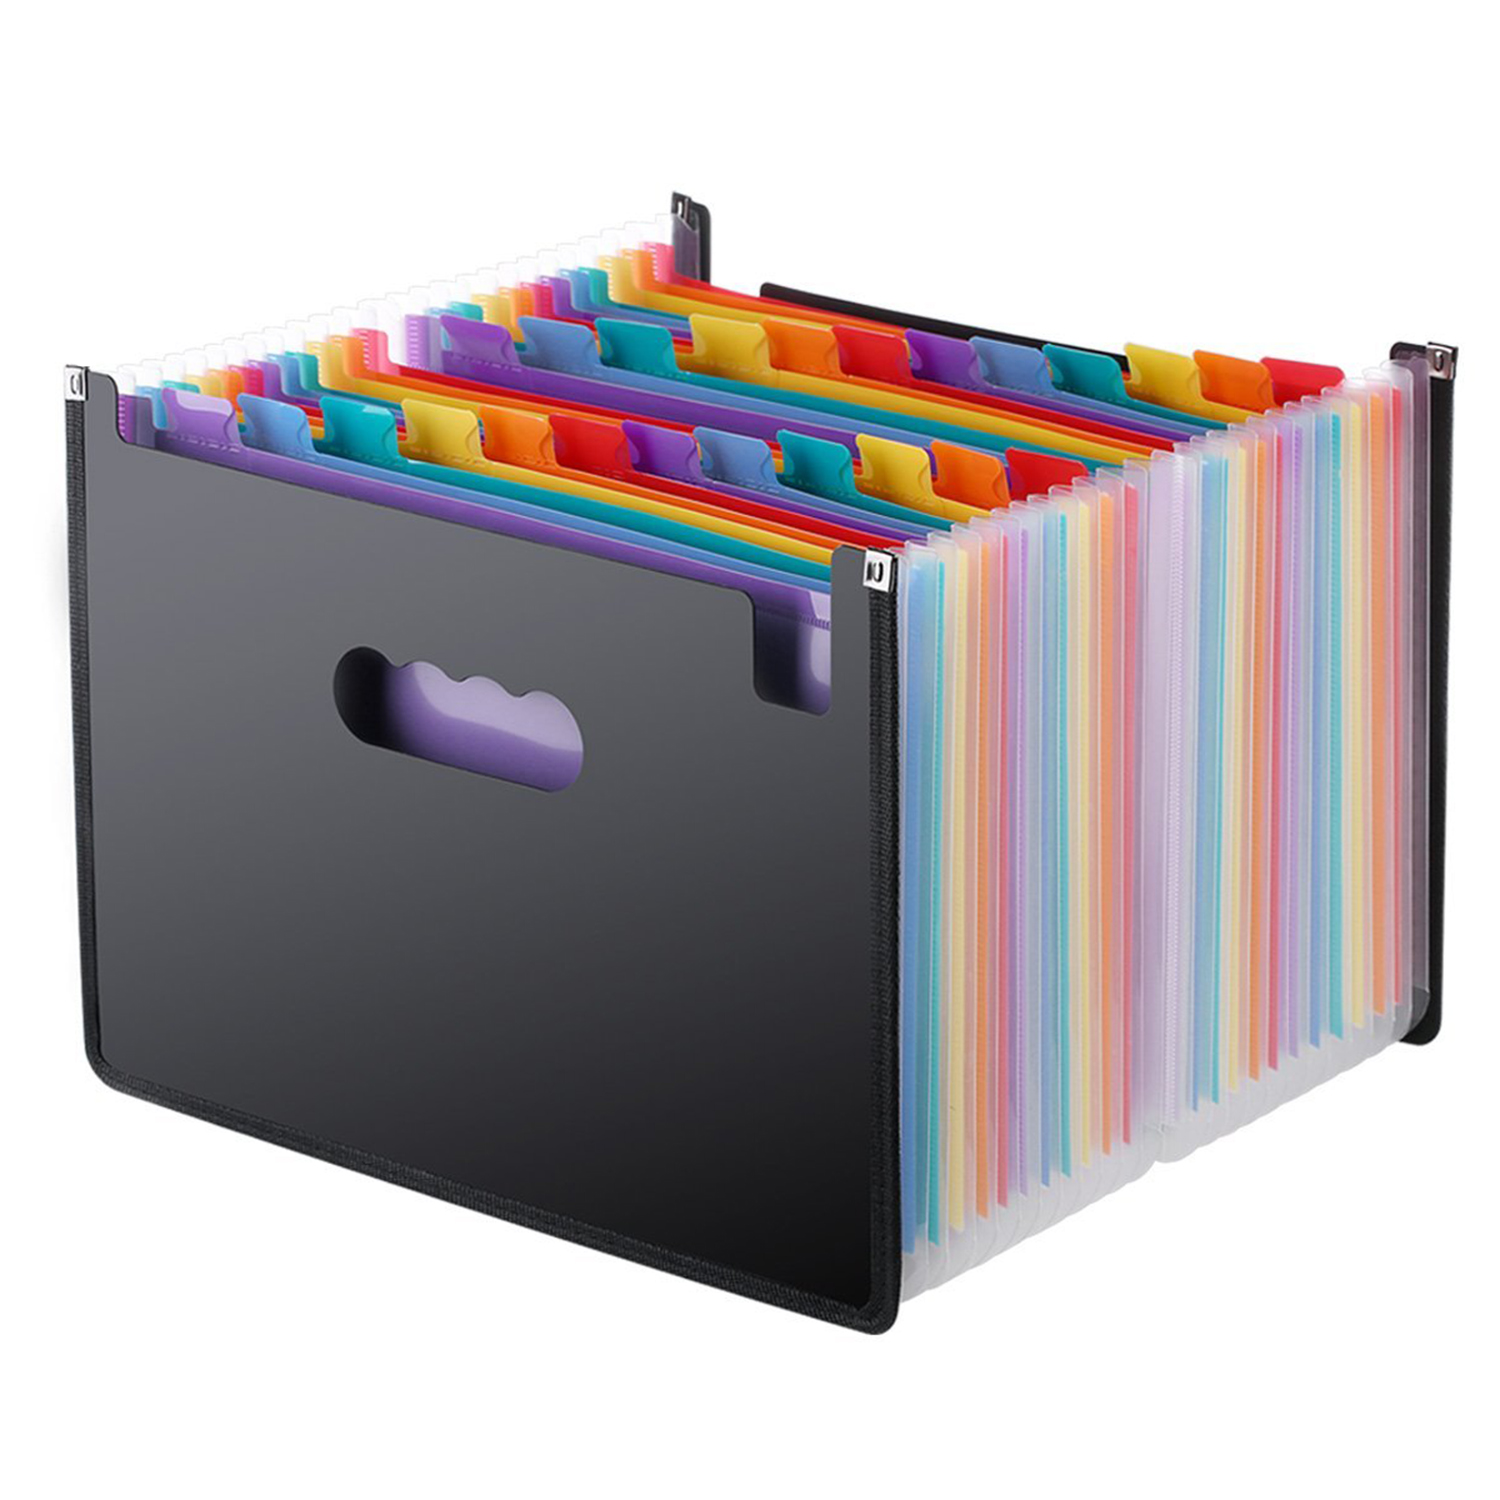 PPYY NEW -Expanding File Folder 24 Pockets, Black Accordion A4 Folder